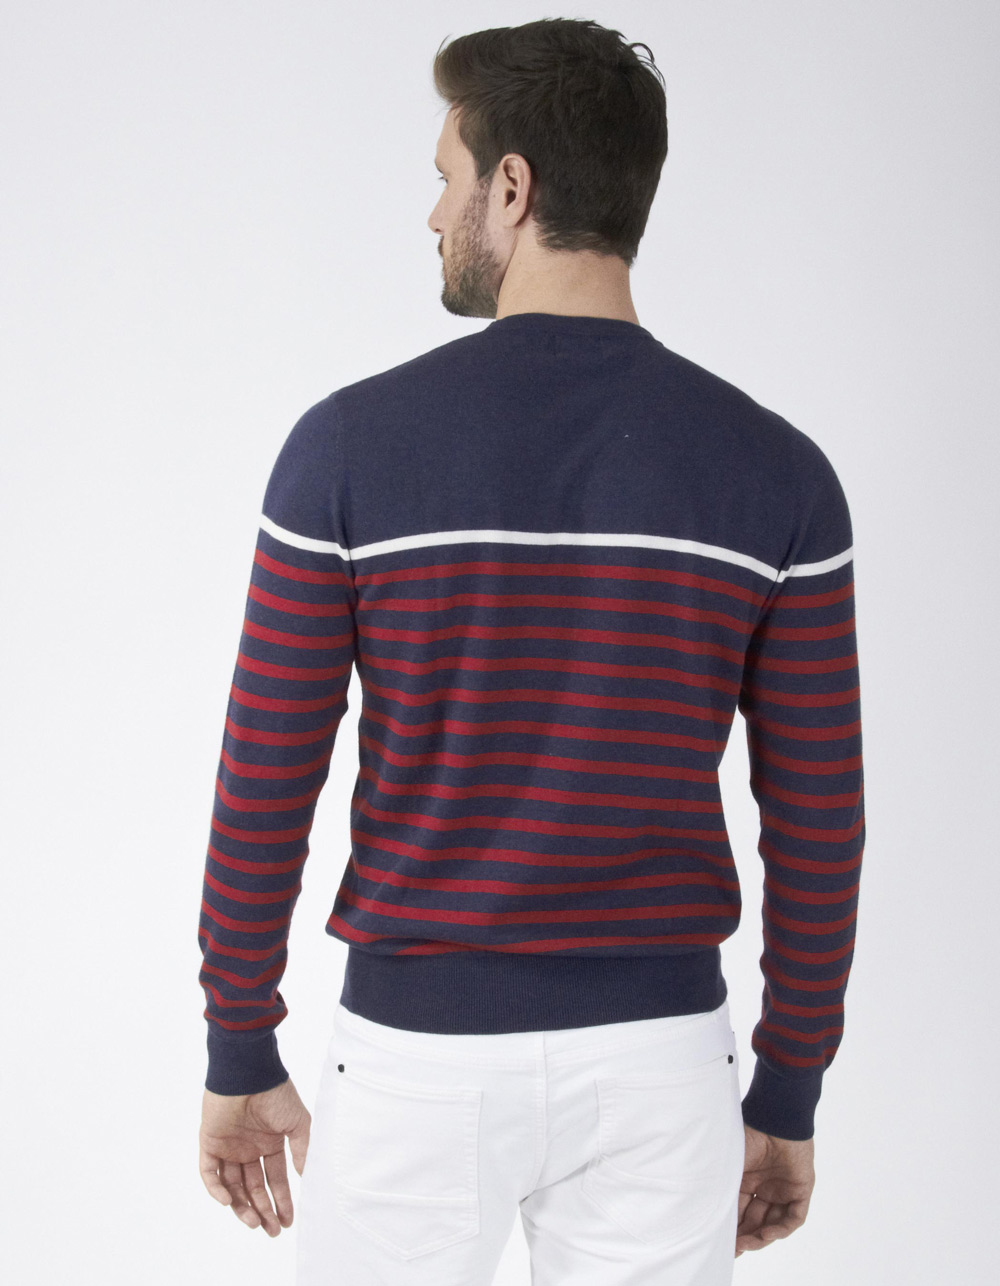 Jersey de rayas azul marino - Backside